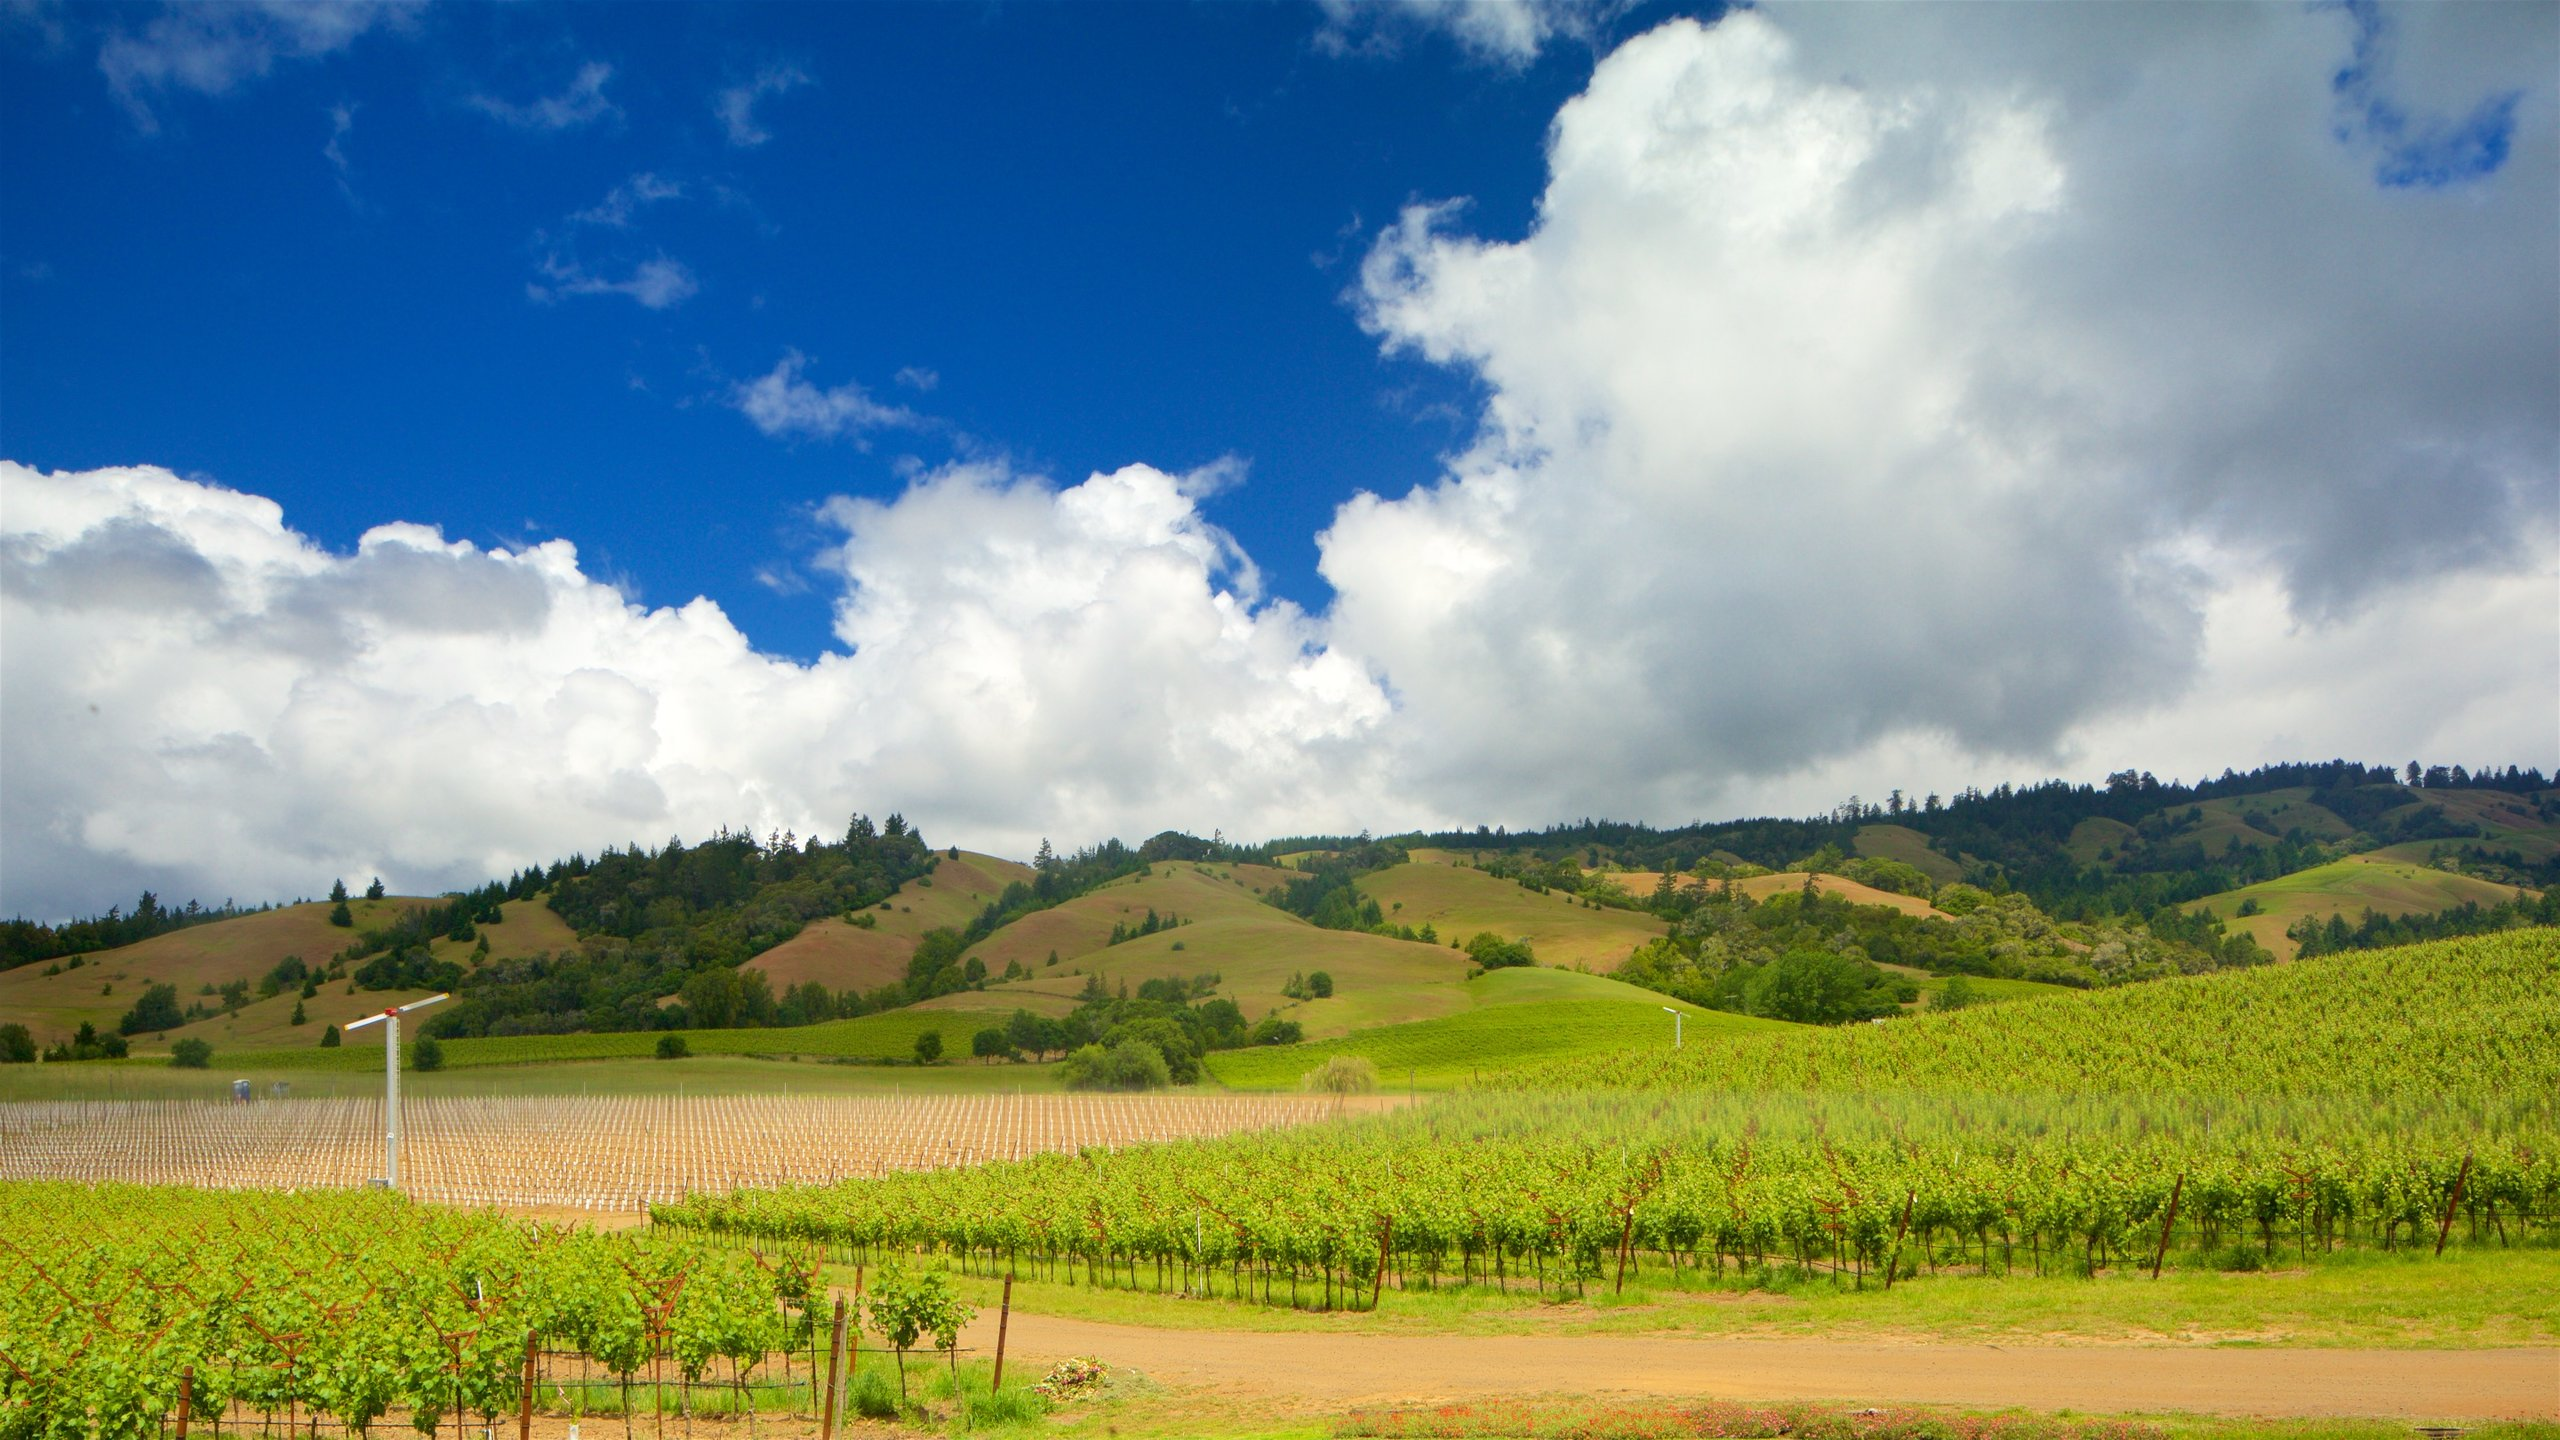 Anderson Valley, California, United States of America